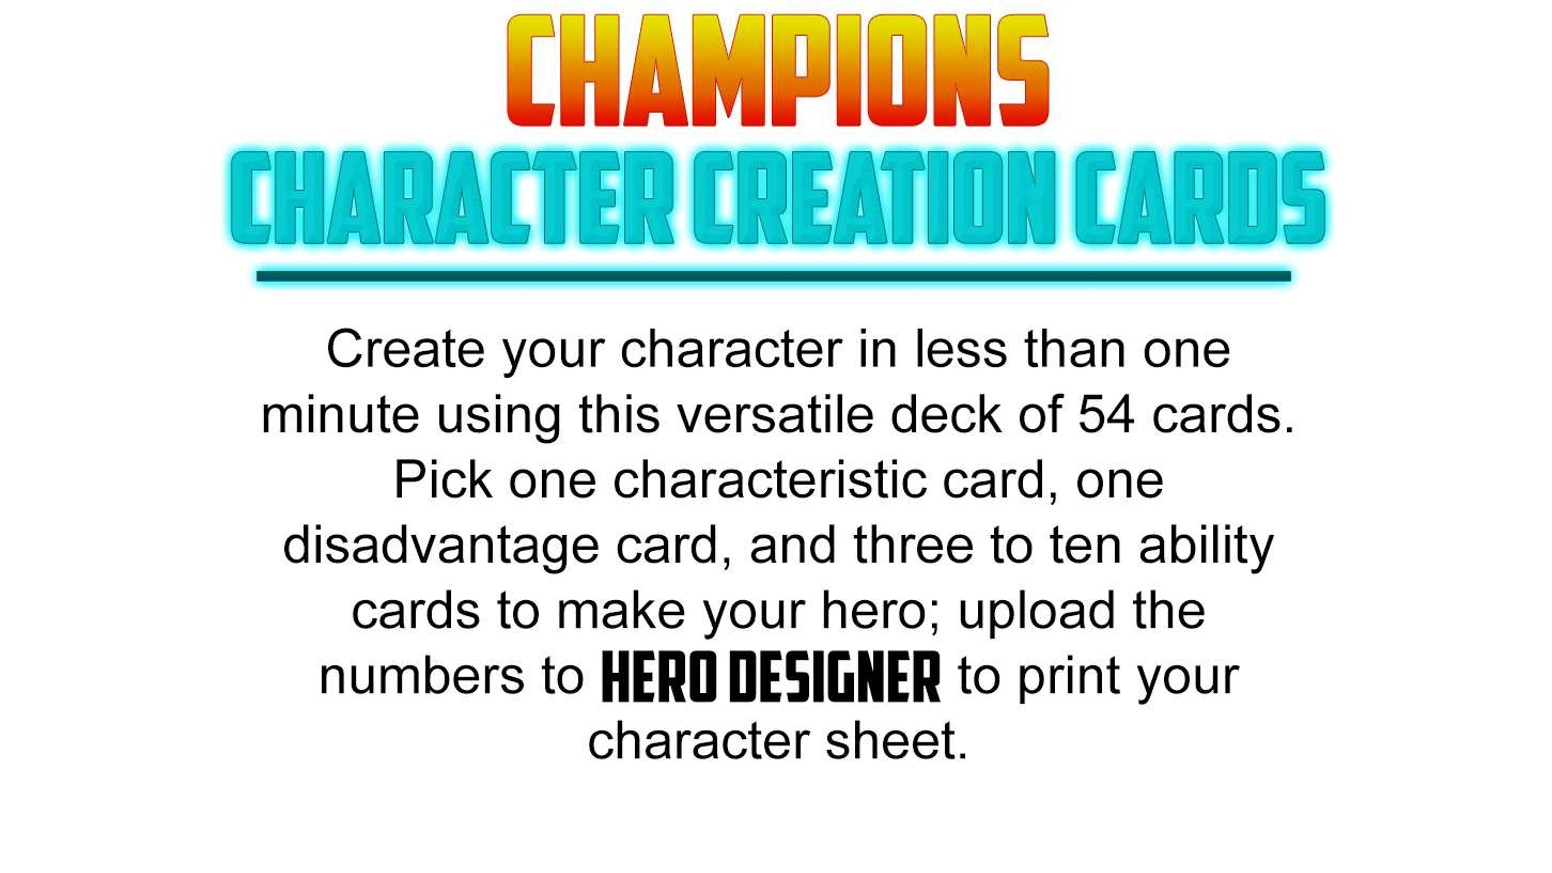 Design Your Character And Play : Champions character creation cards by high rock press